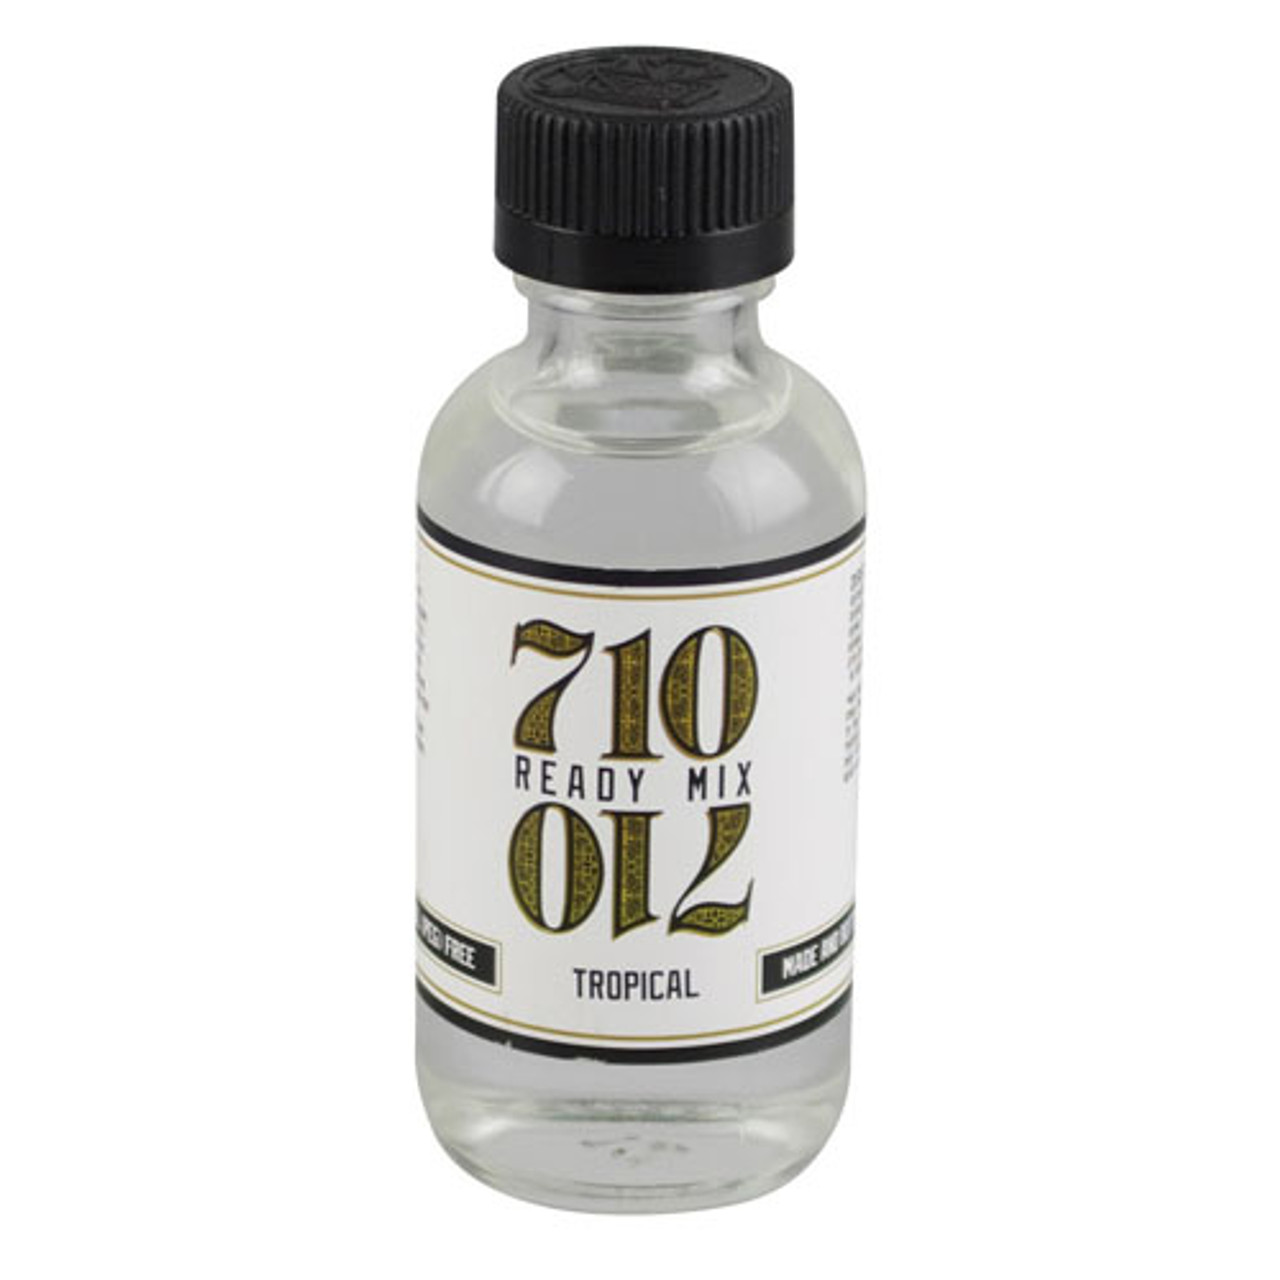 710 Ready Mix Solution